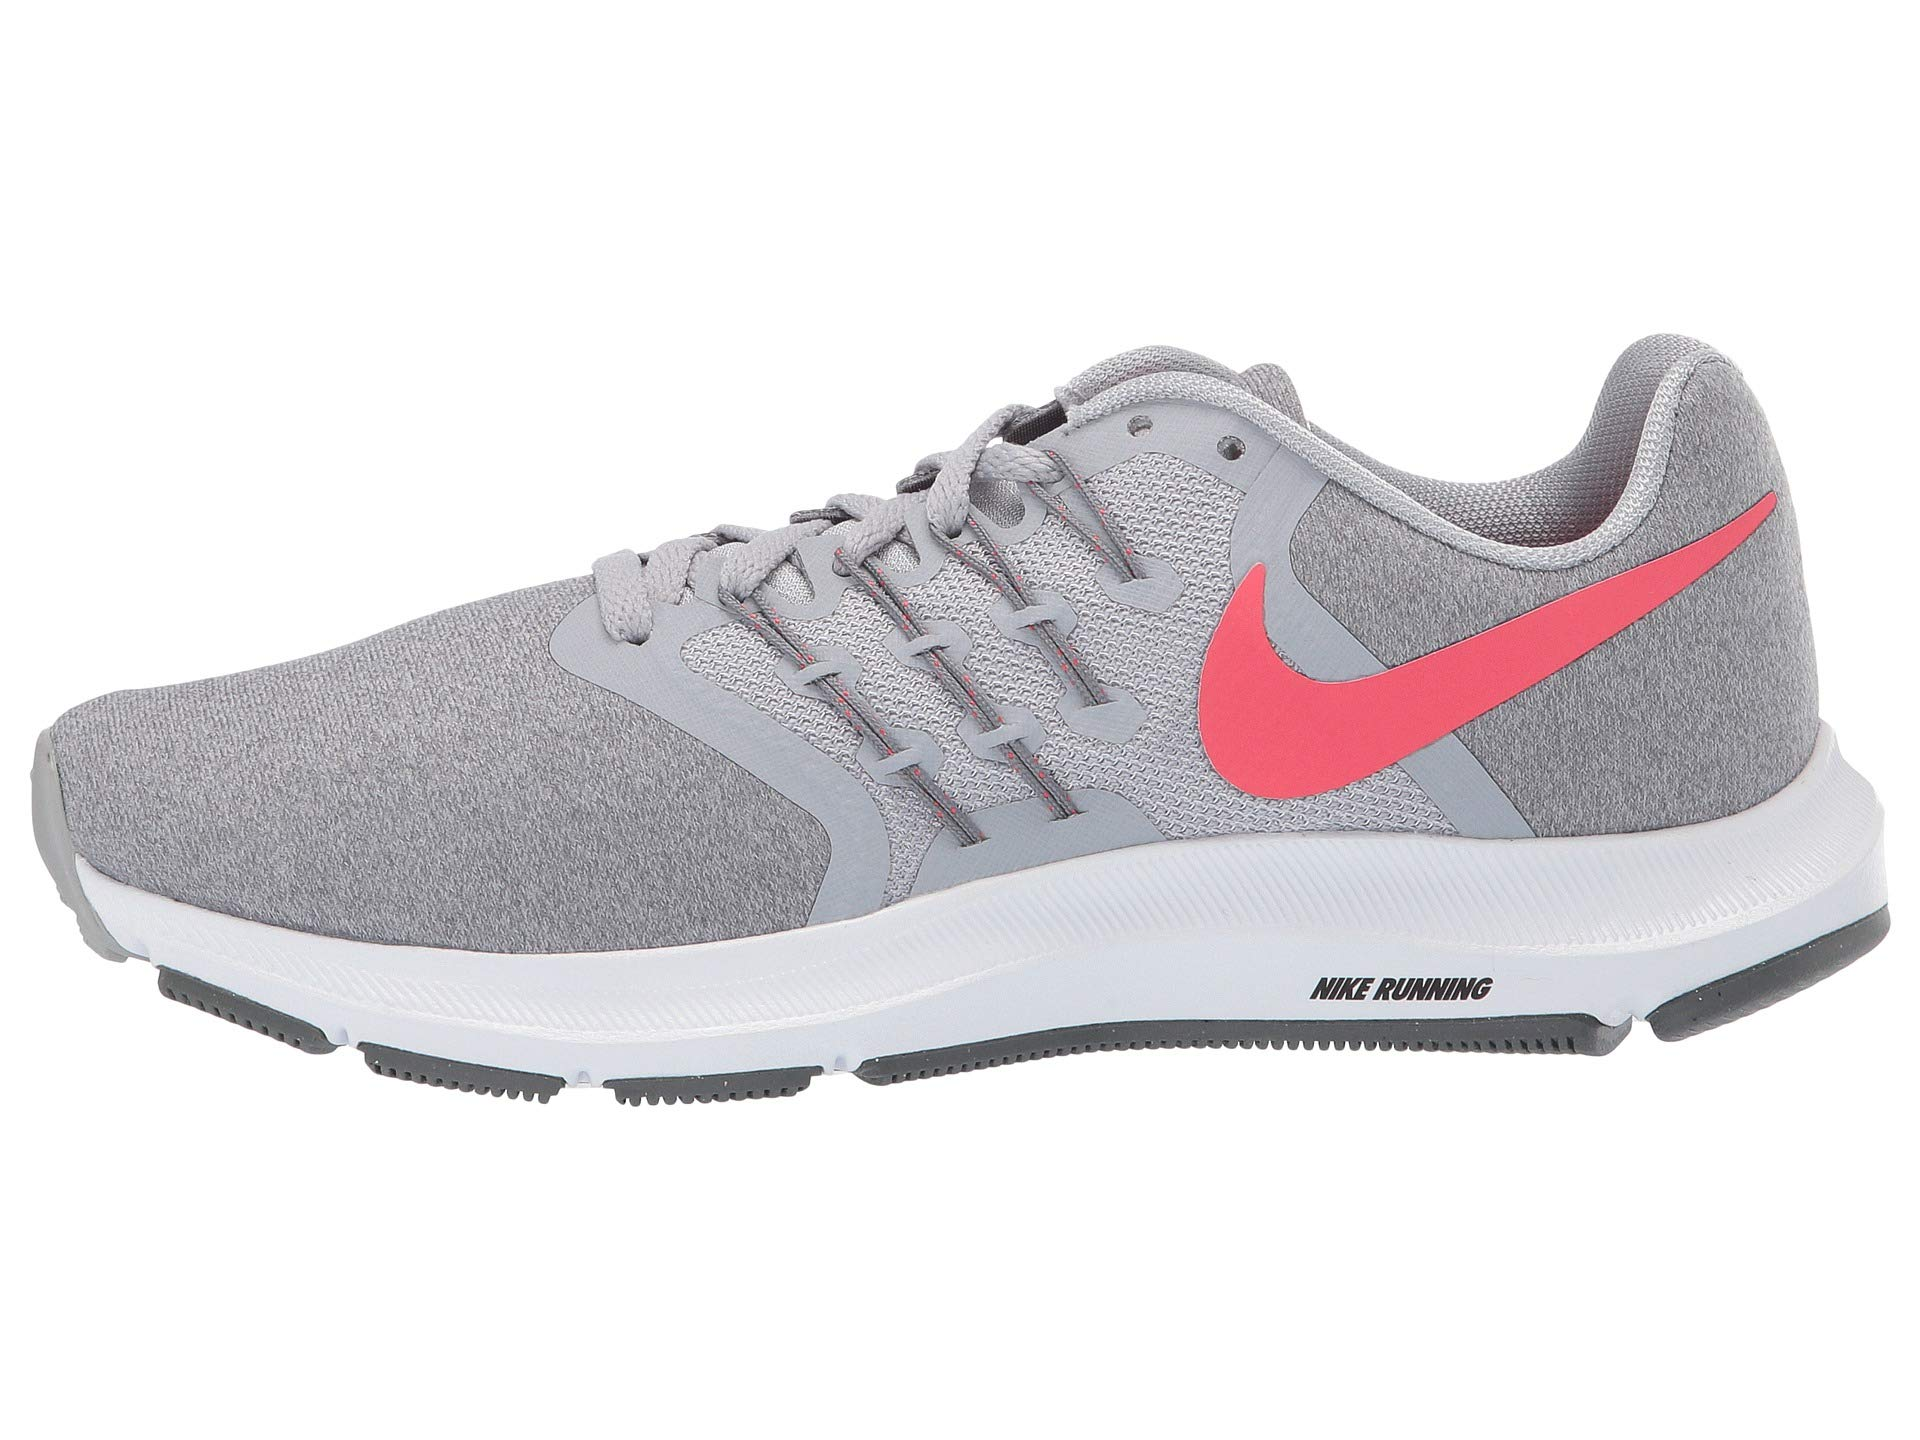 cool Grey Grey white Swift ember Run Glow Nike Wolf xYnwtfq8T